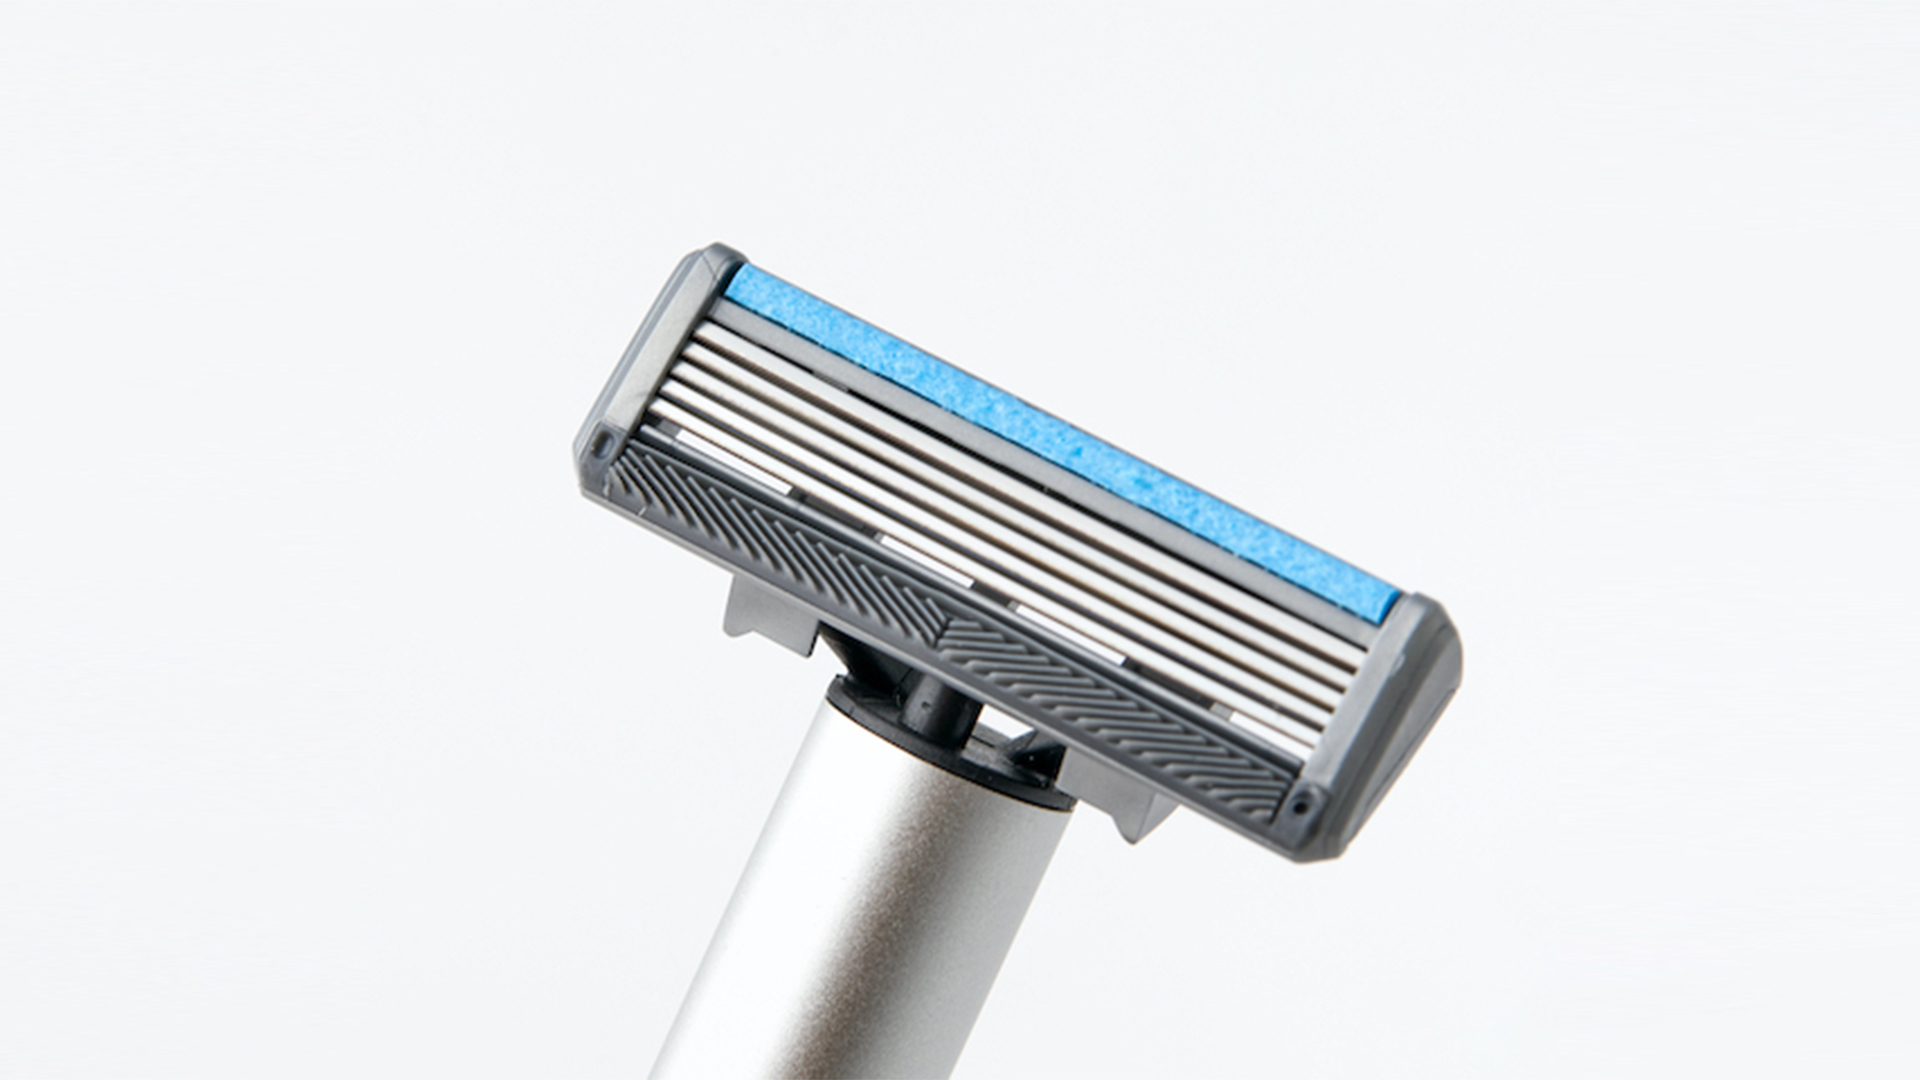 Manual & Electric 2-In-1 Shaver 28 - Sneapy